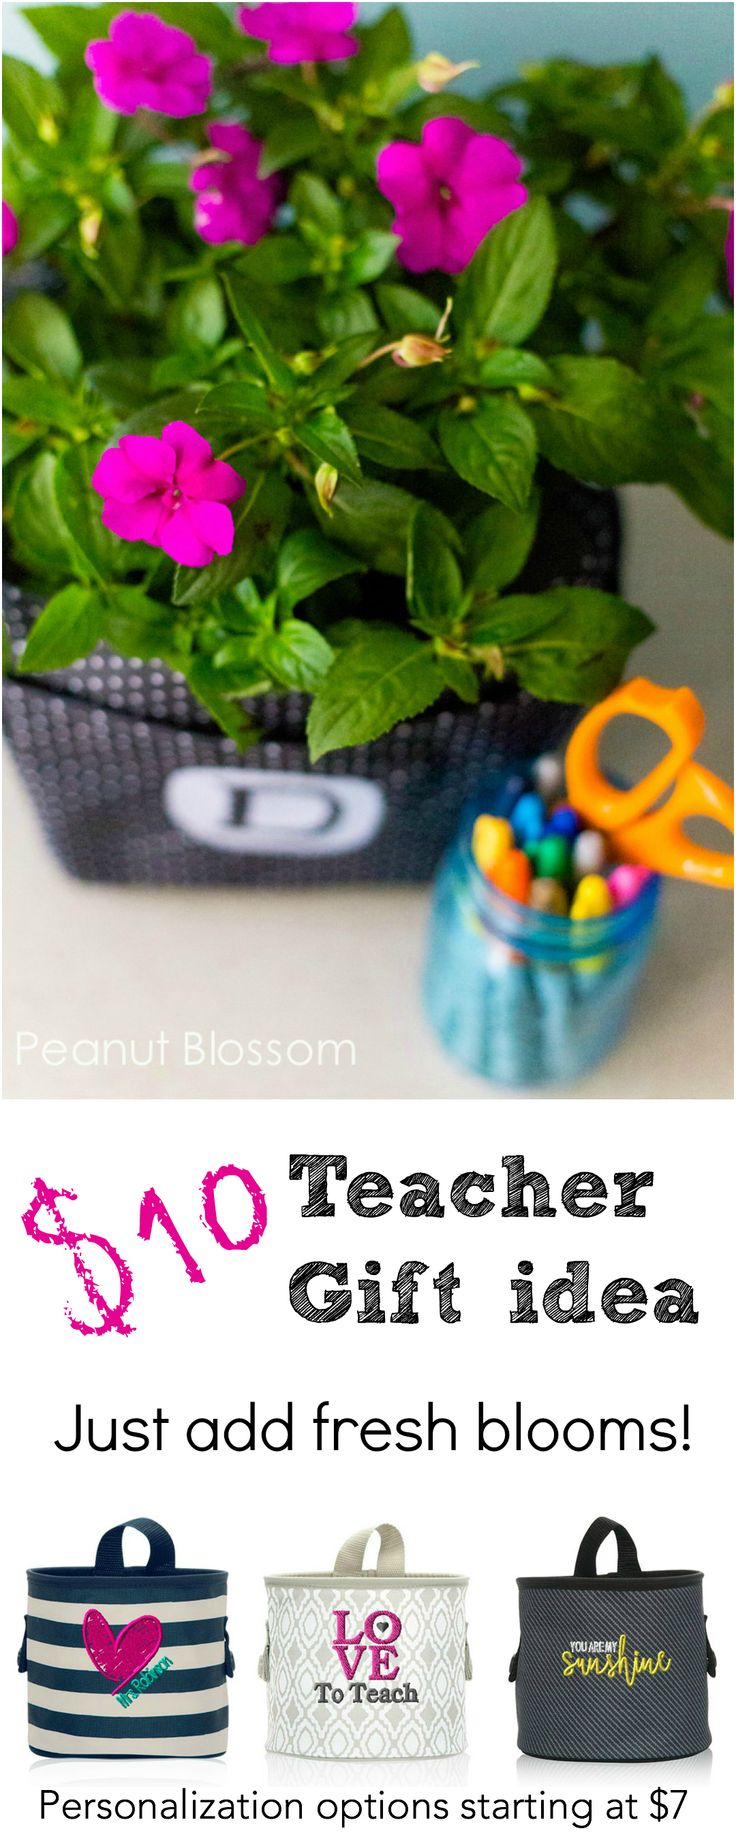 Oh snap bin ideas - What An Adorable Teacher Appreciation Gift Idea For Just 10 You Can Give Her A